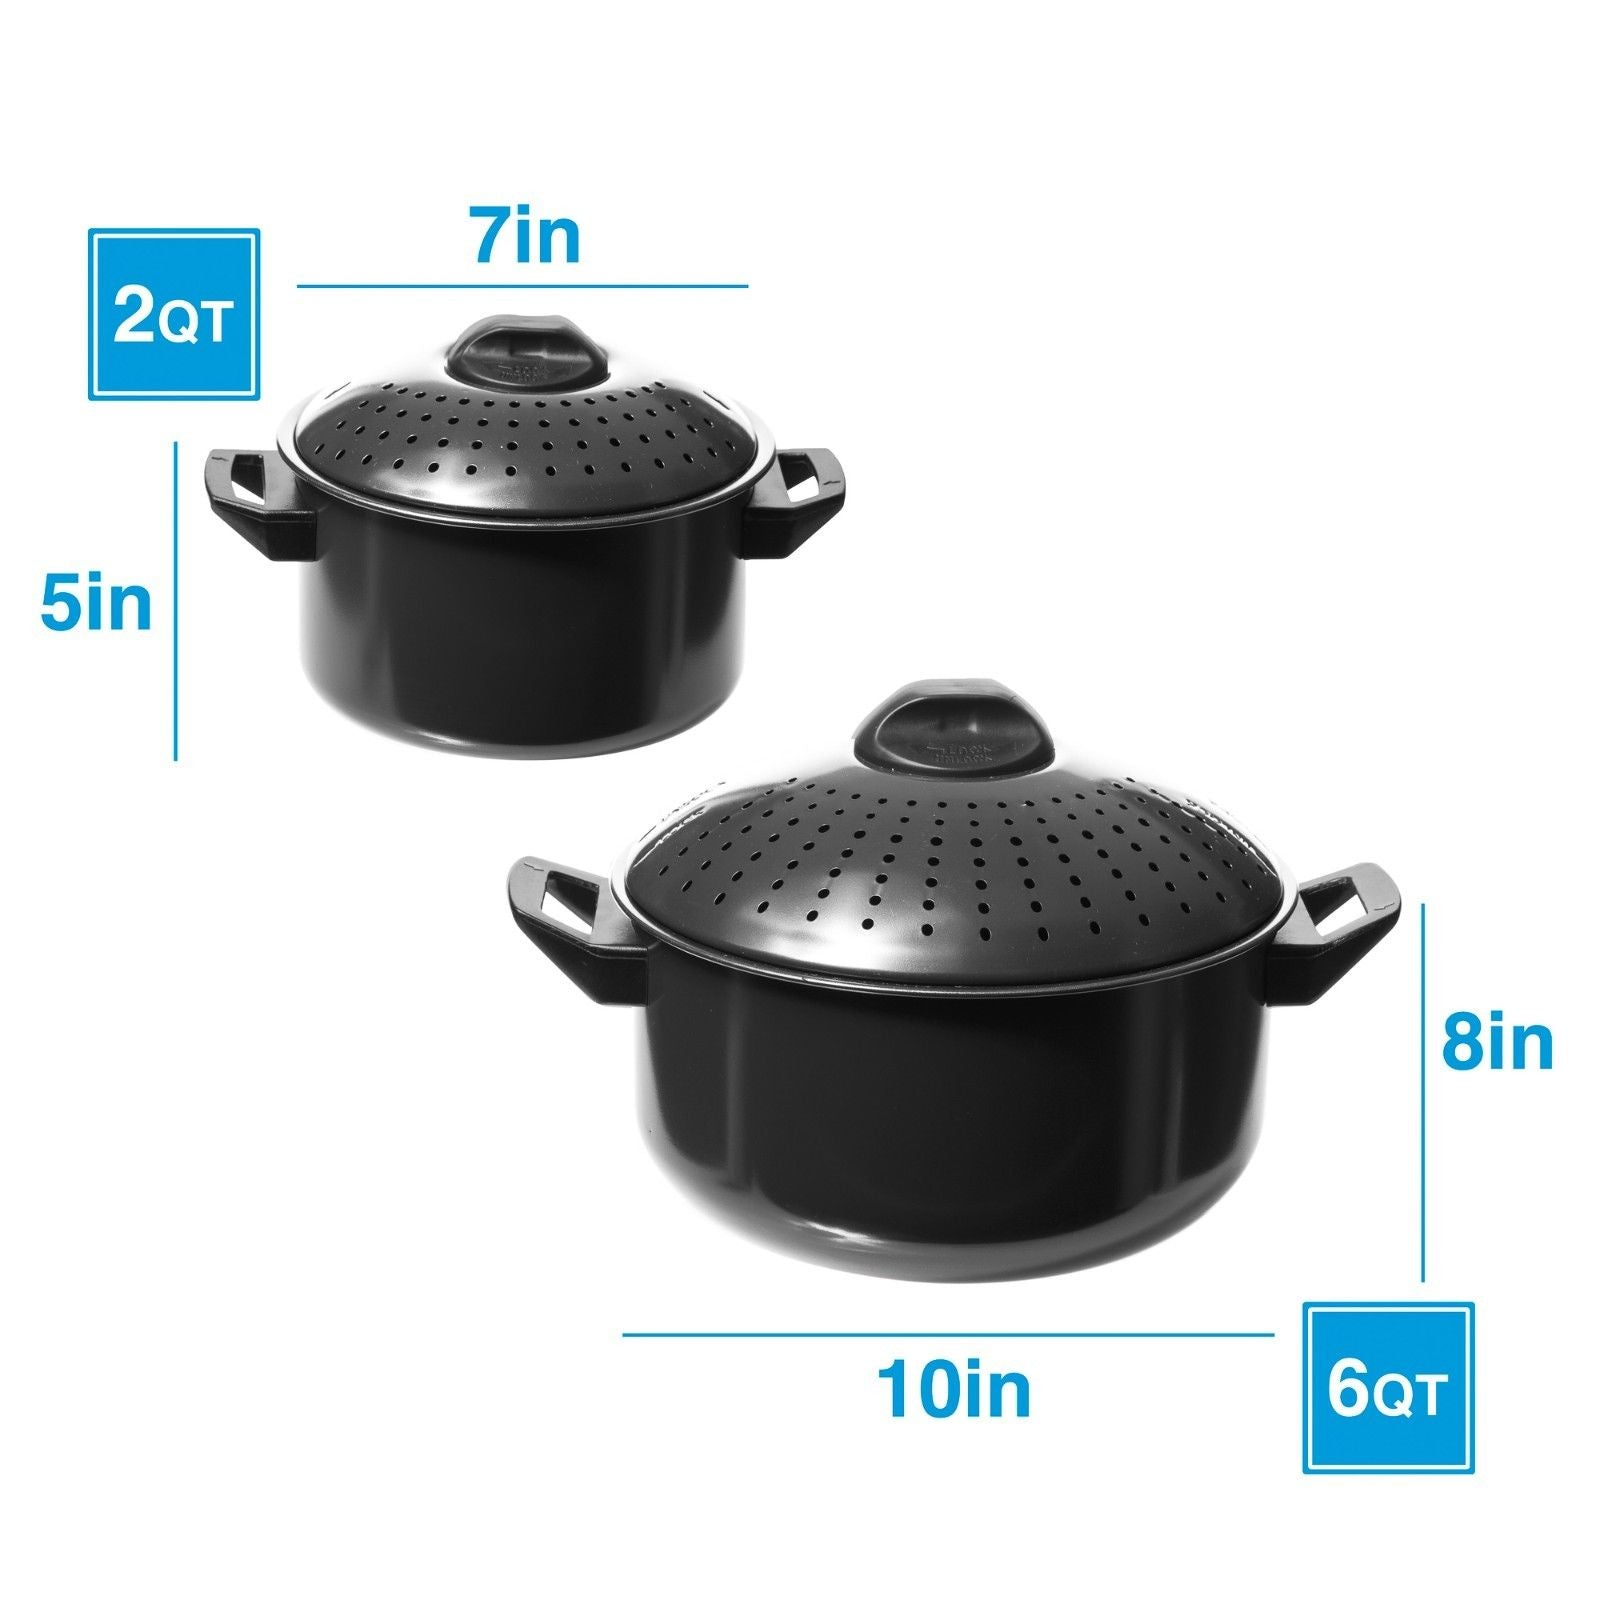 2 Pc Chef Quality Pasta Pot with Strainer Lid - 6 Qt & 2 Qt Black Stock Pot or Pasta Cooker